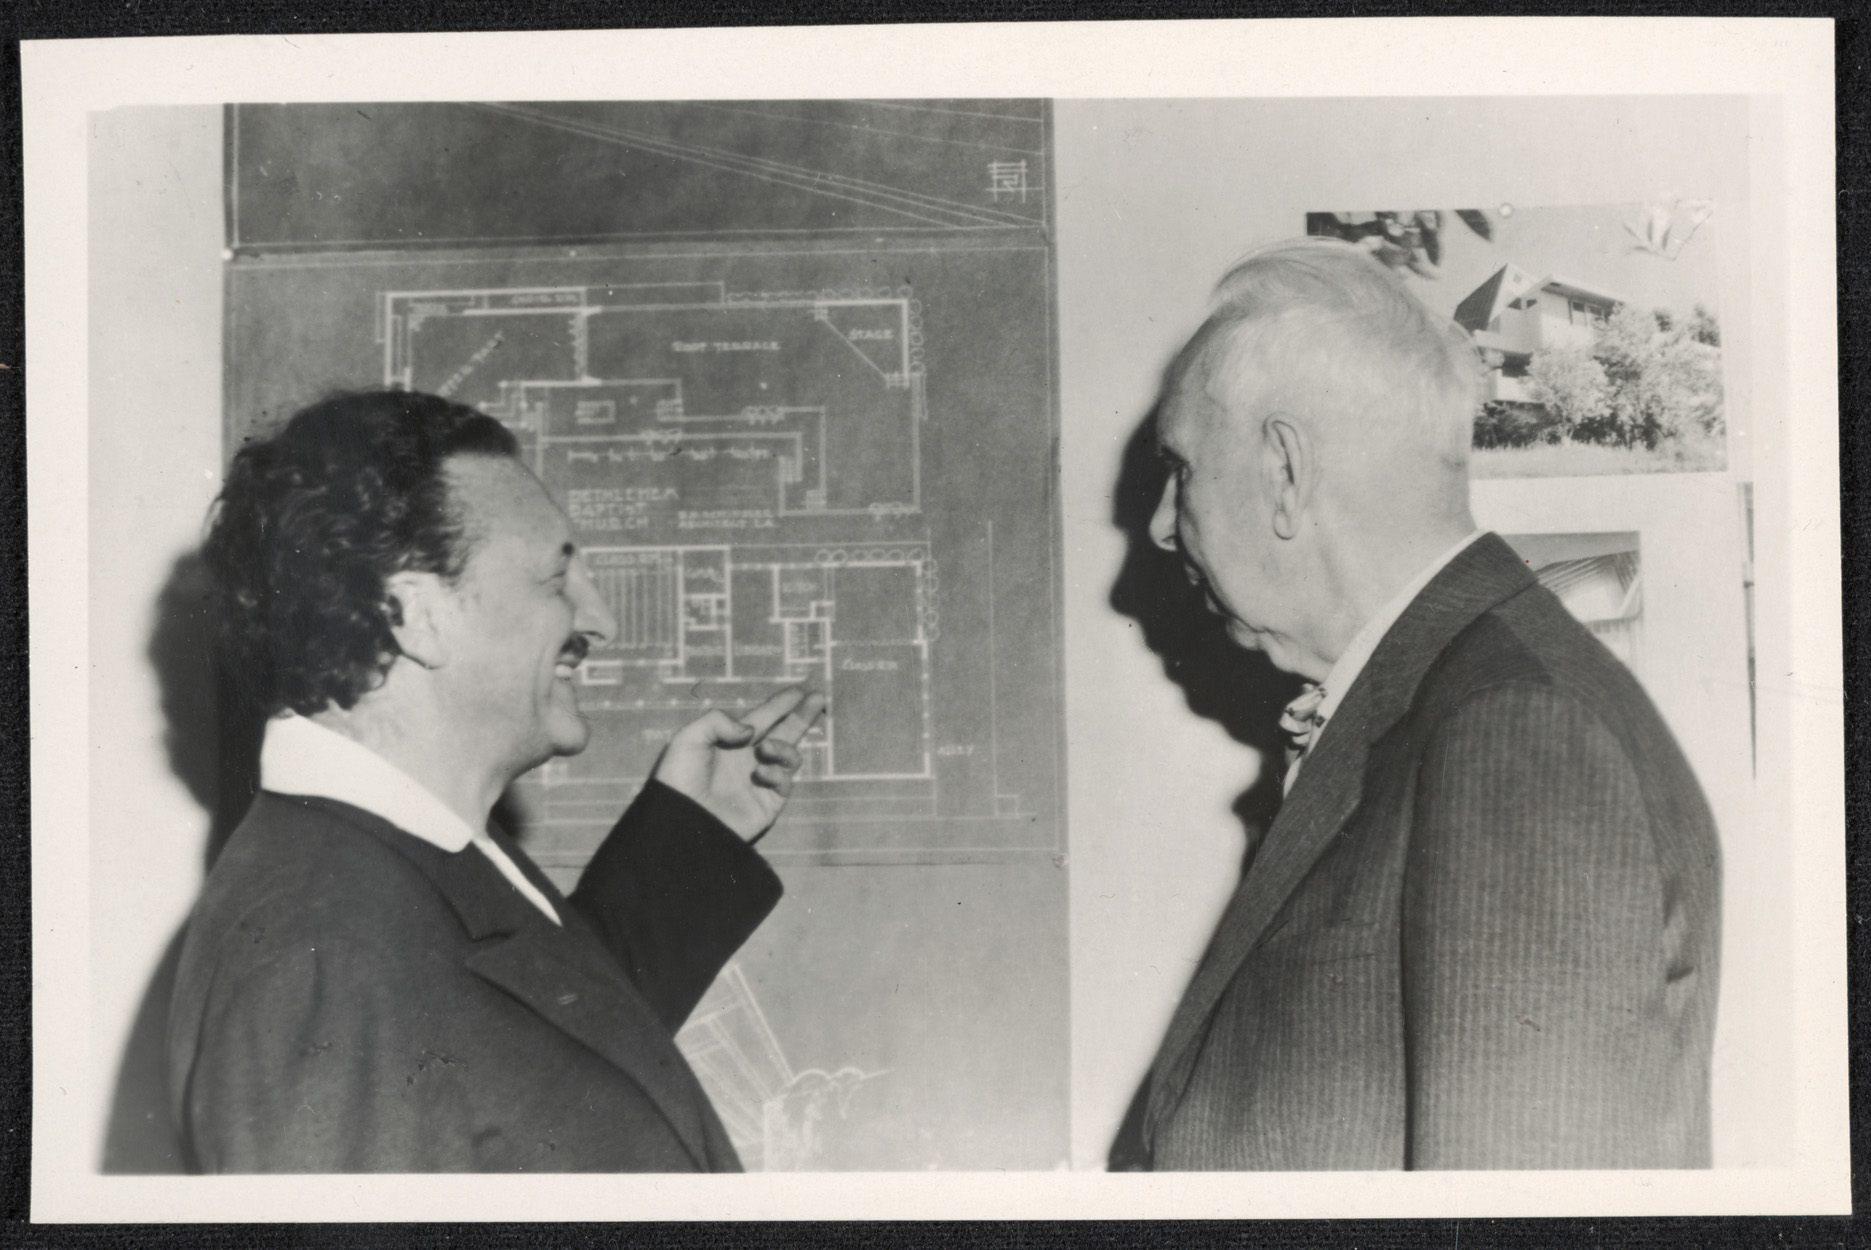 R. M. Schindler and Theodore Dreiser looking at a blueprint of the Bethlehem Baptist Church, 1945, photo by Berkeley Greene Tobey. Esther McCoy Papers, Archives of American Art, Smithsonian Institution.